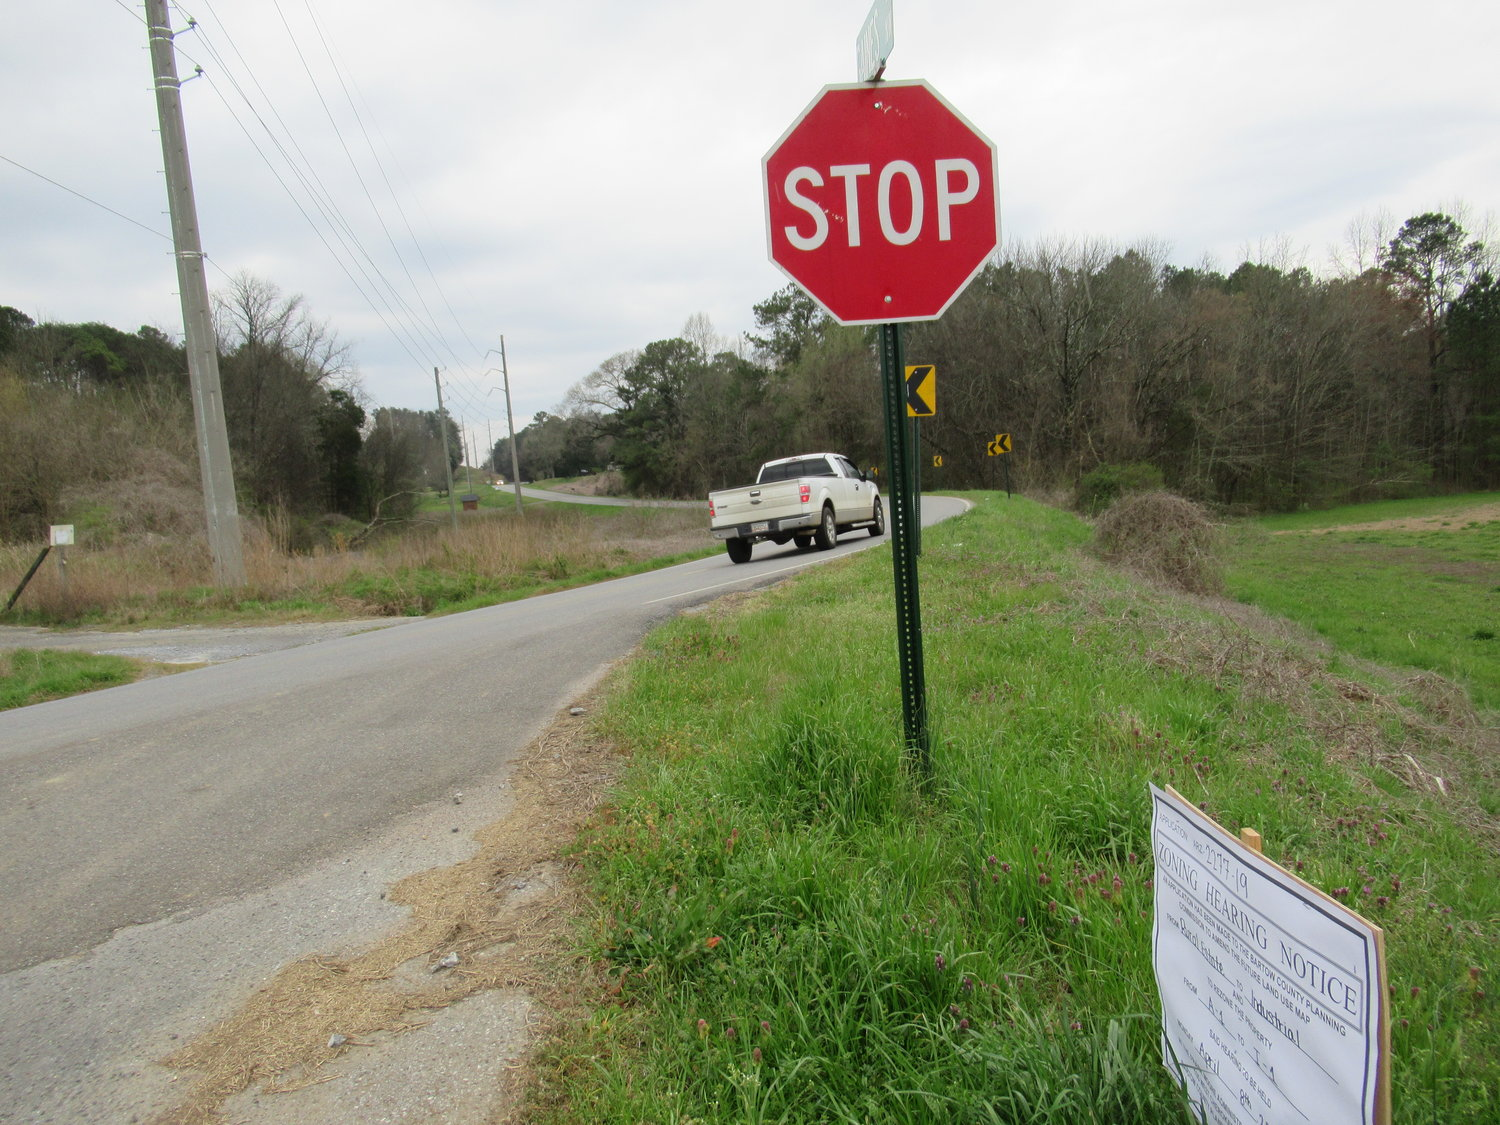 A rezoning hearing for 122 acres along Gaines Road and Spring Place Road will be tabled for at least six months after a real estate developer failed to comply with County public notice procedures.